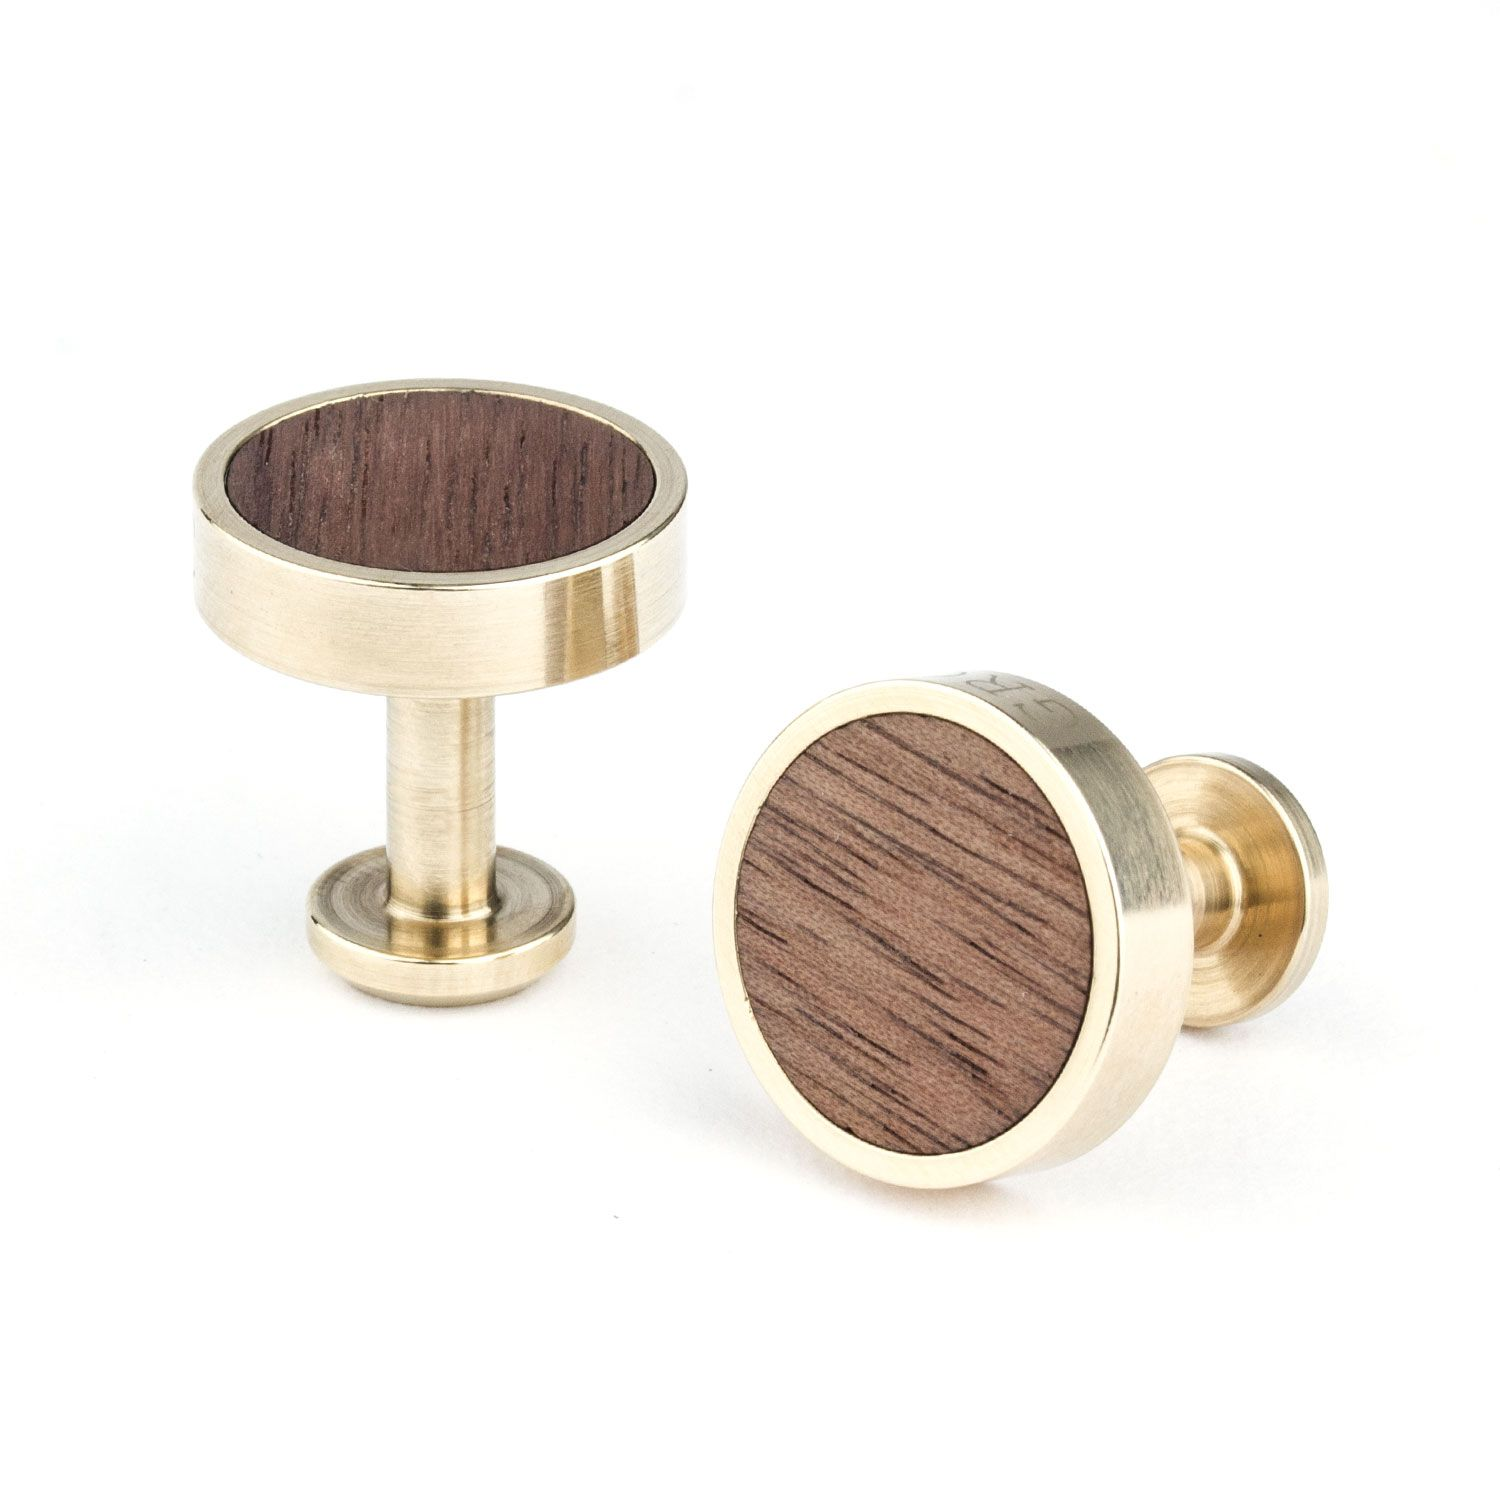 Elegant Cufflinks in Bronze (With images) Cufflinks